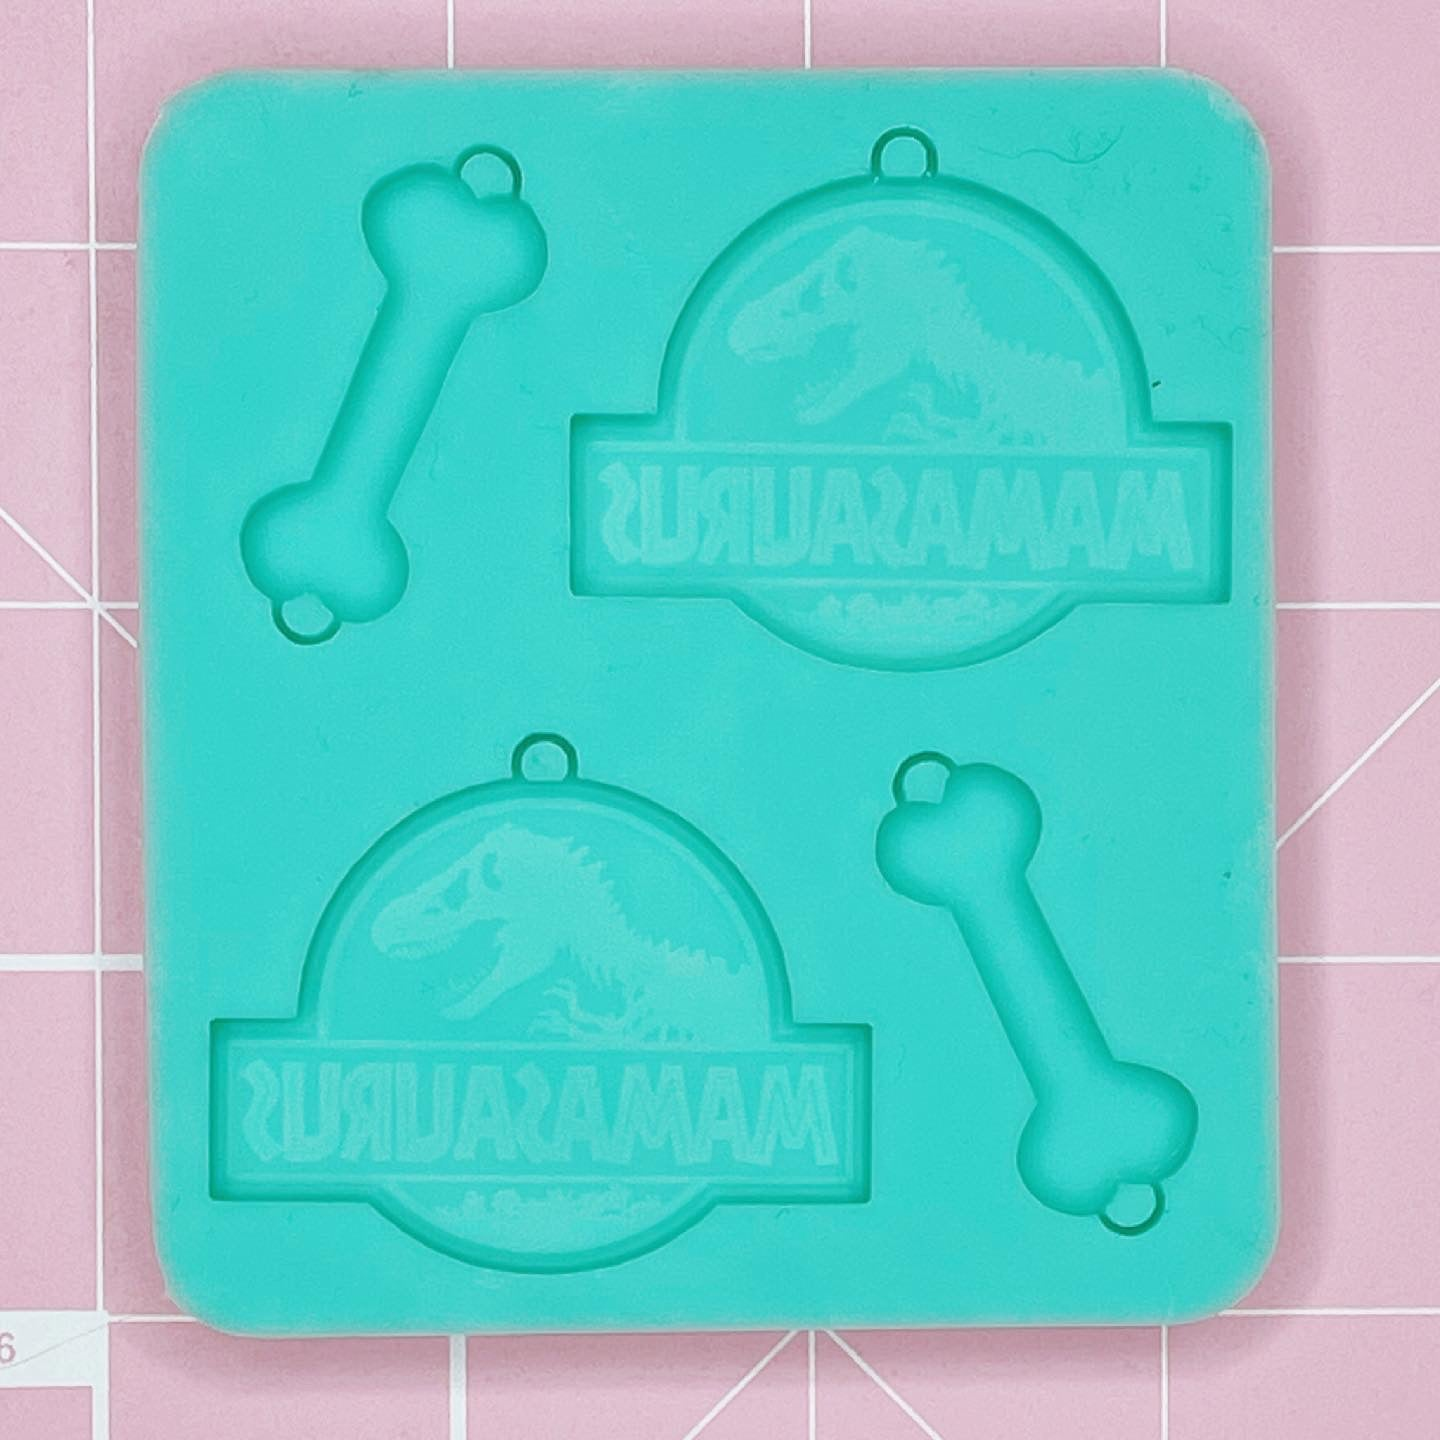 Earring Palette Mold: Mamasaurus / Bones Dangle Earrings - [Etched / Solid]